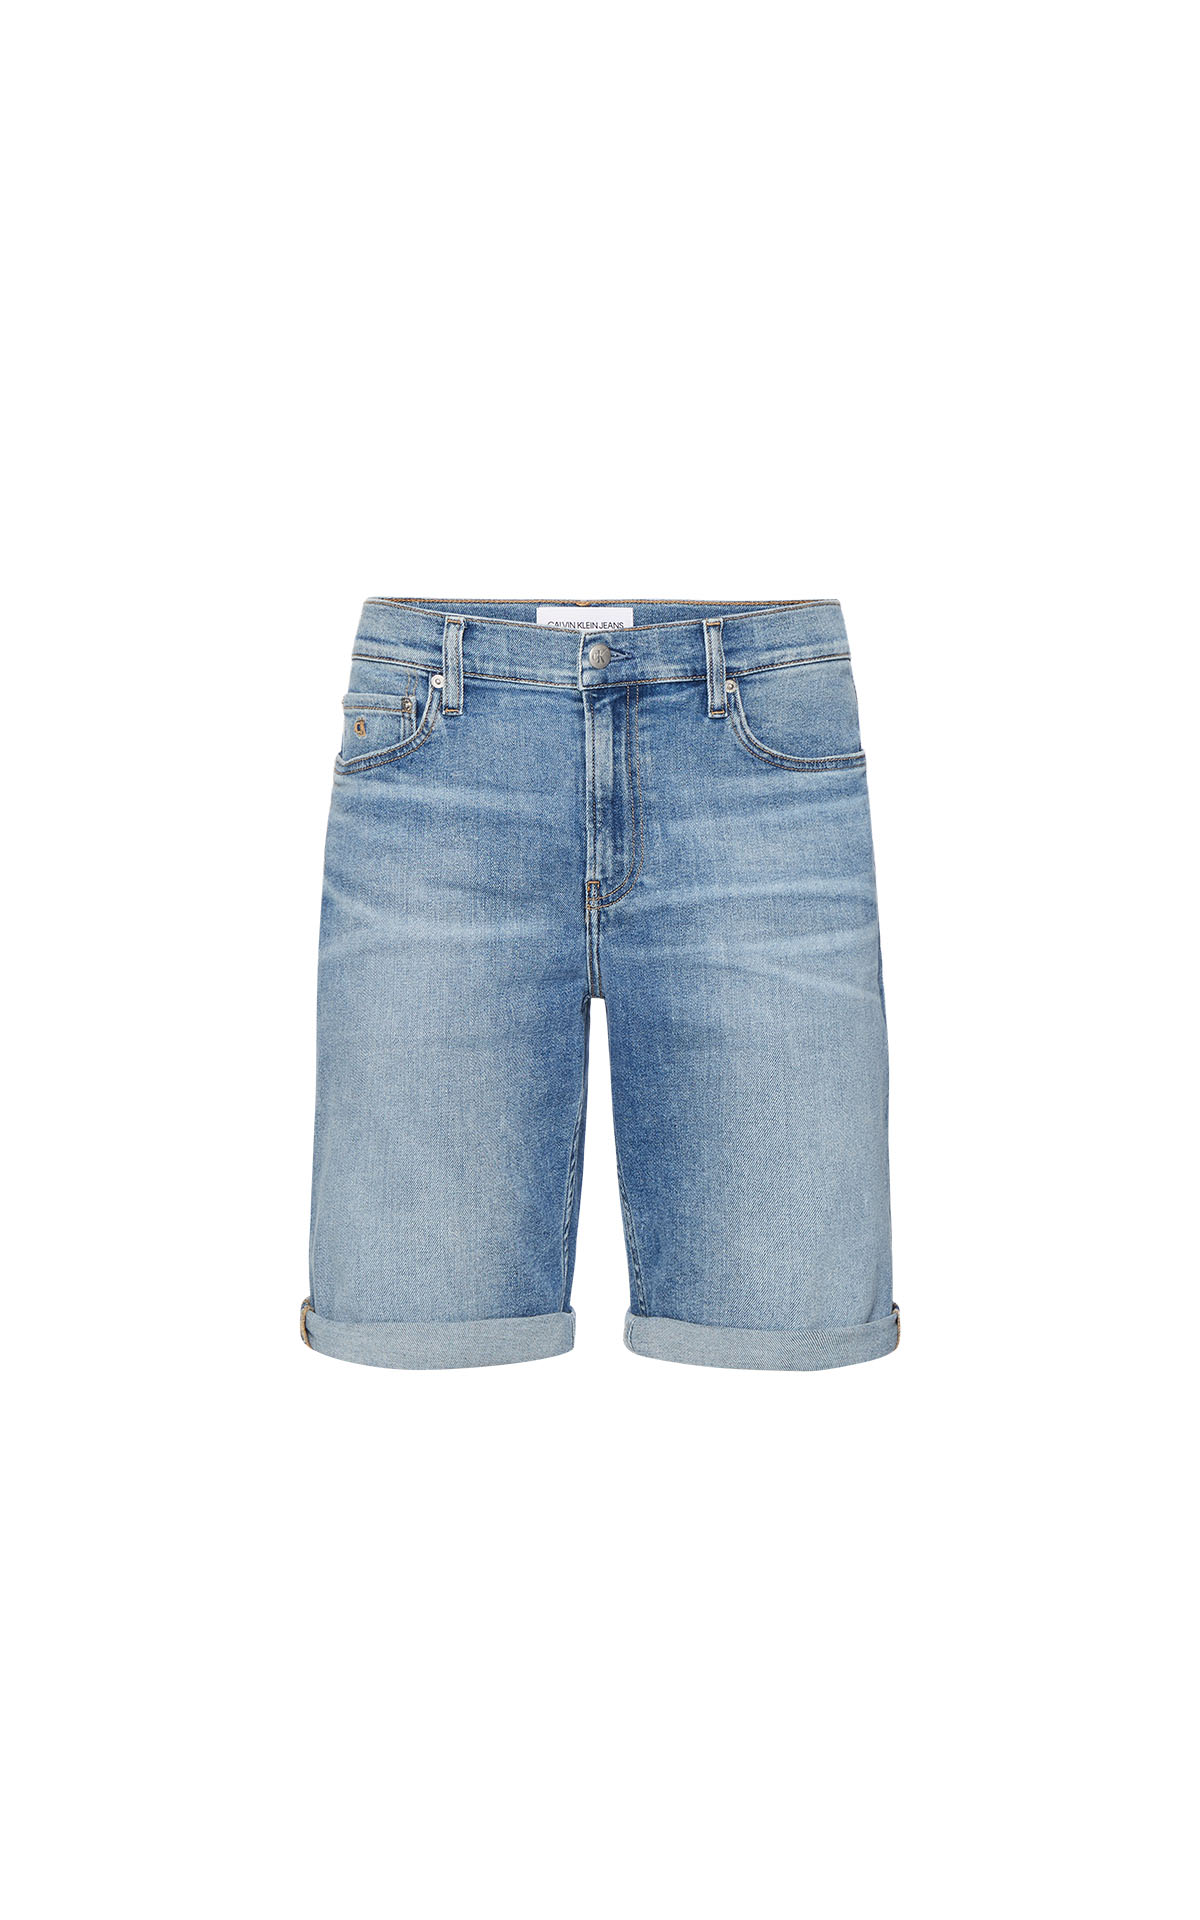 Calvin Klein mens eo slim short at the Bicester Village Shopping Collection